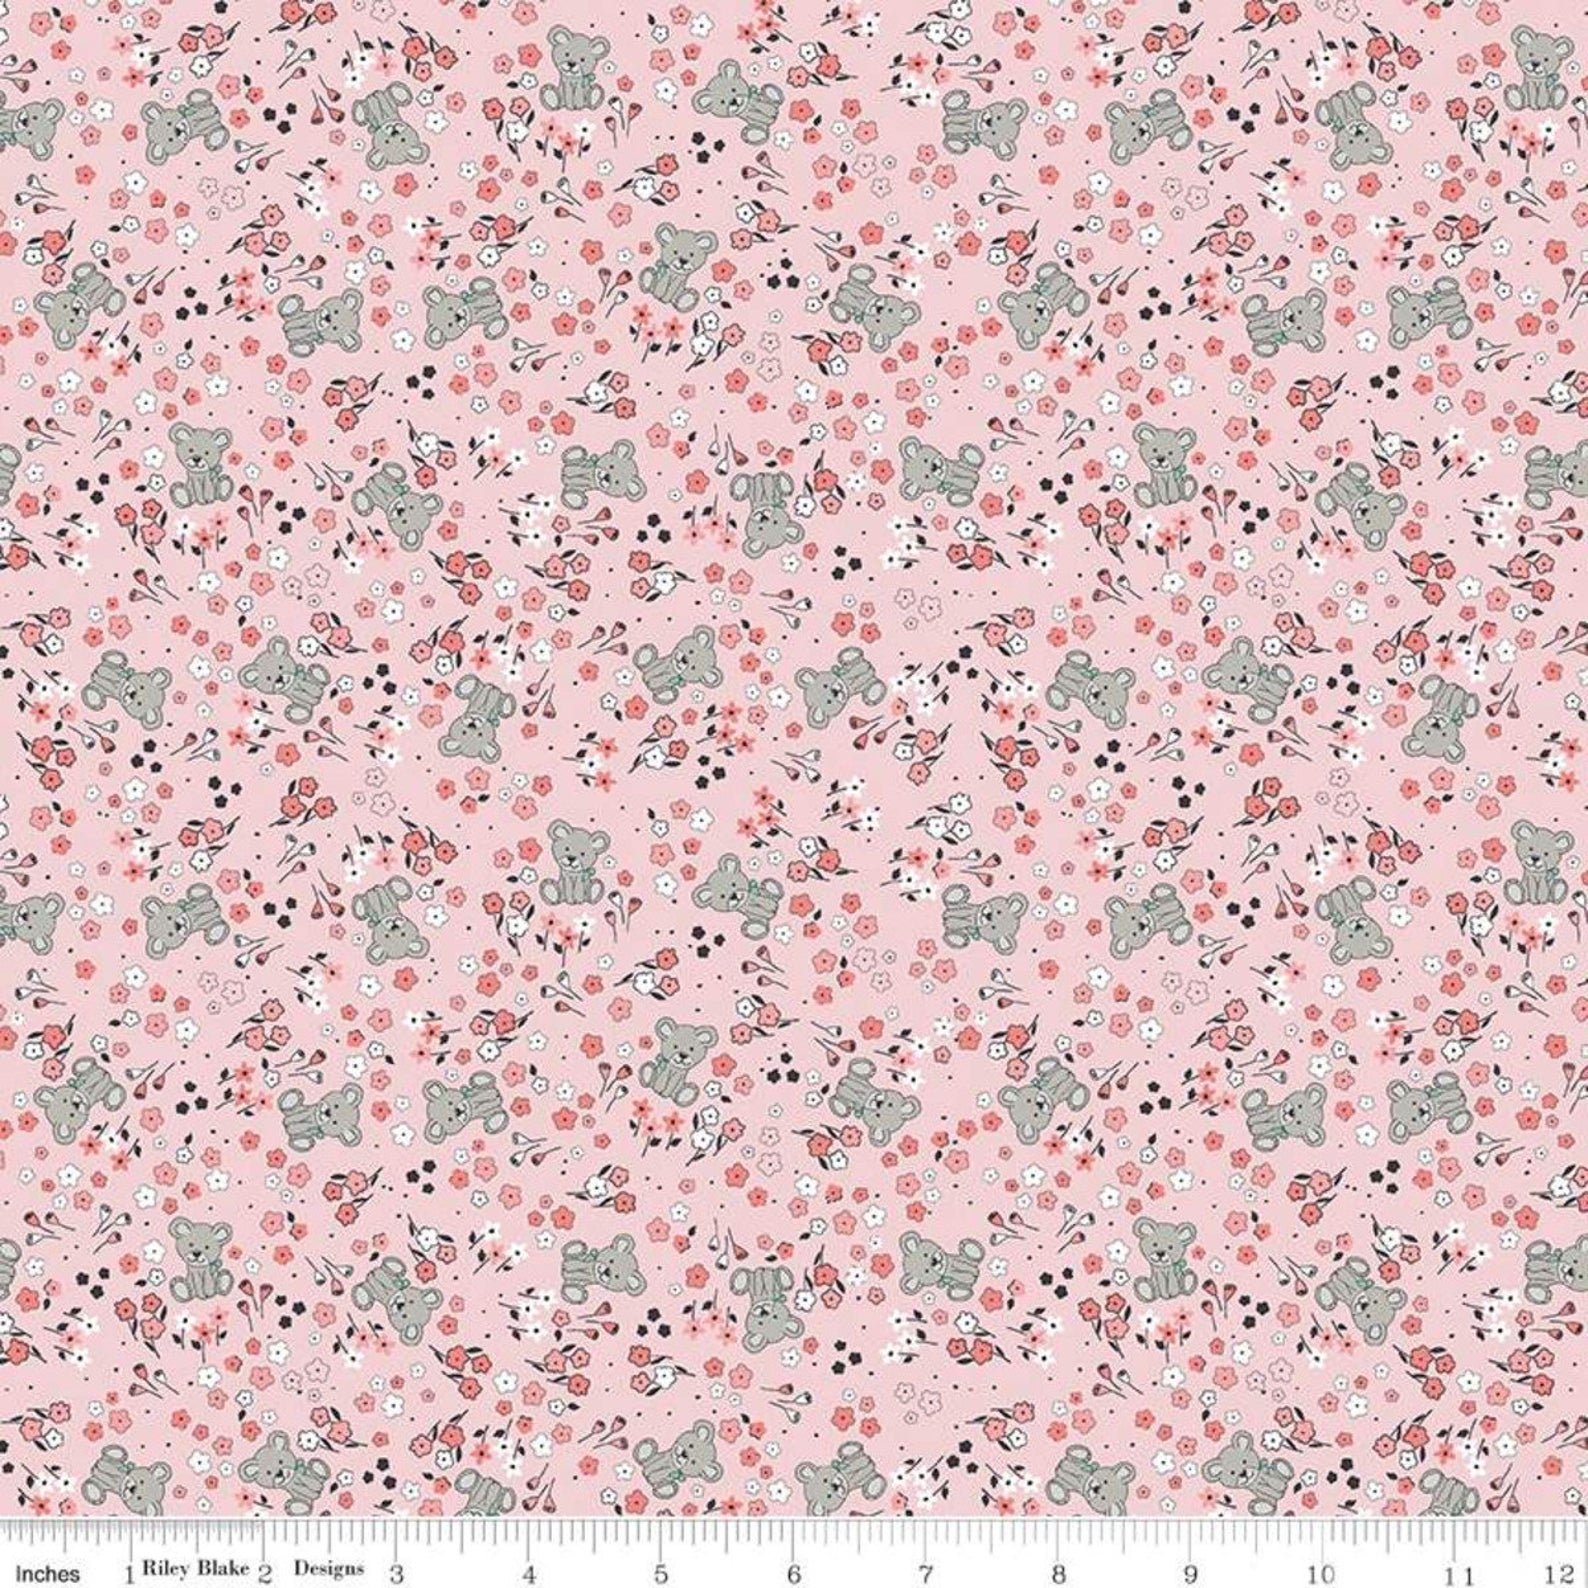 Sleep Tight Garden Pink Fabric by Gabrielle Neil for Riley Blake Designs